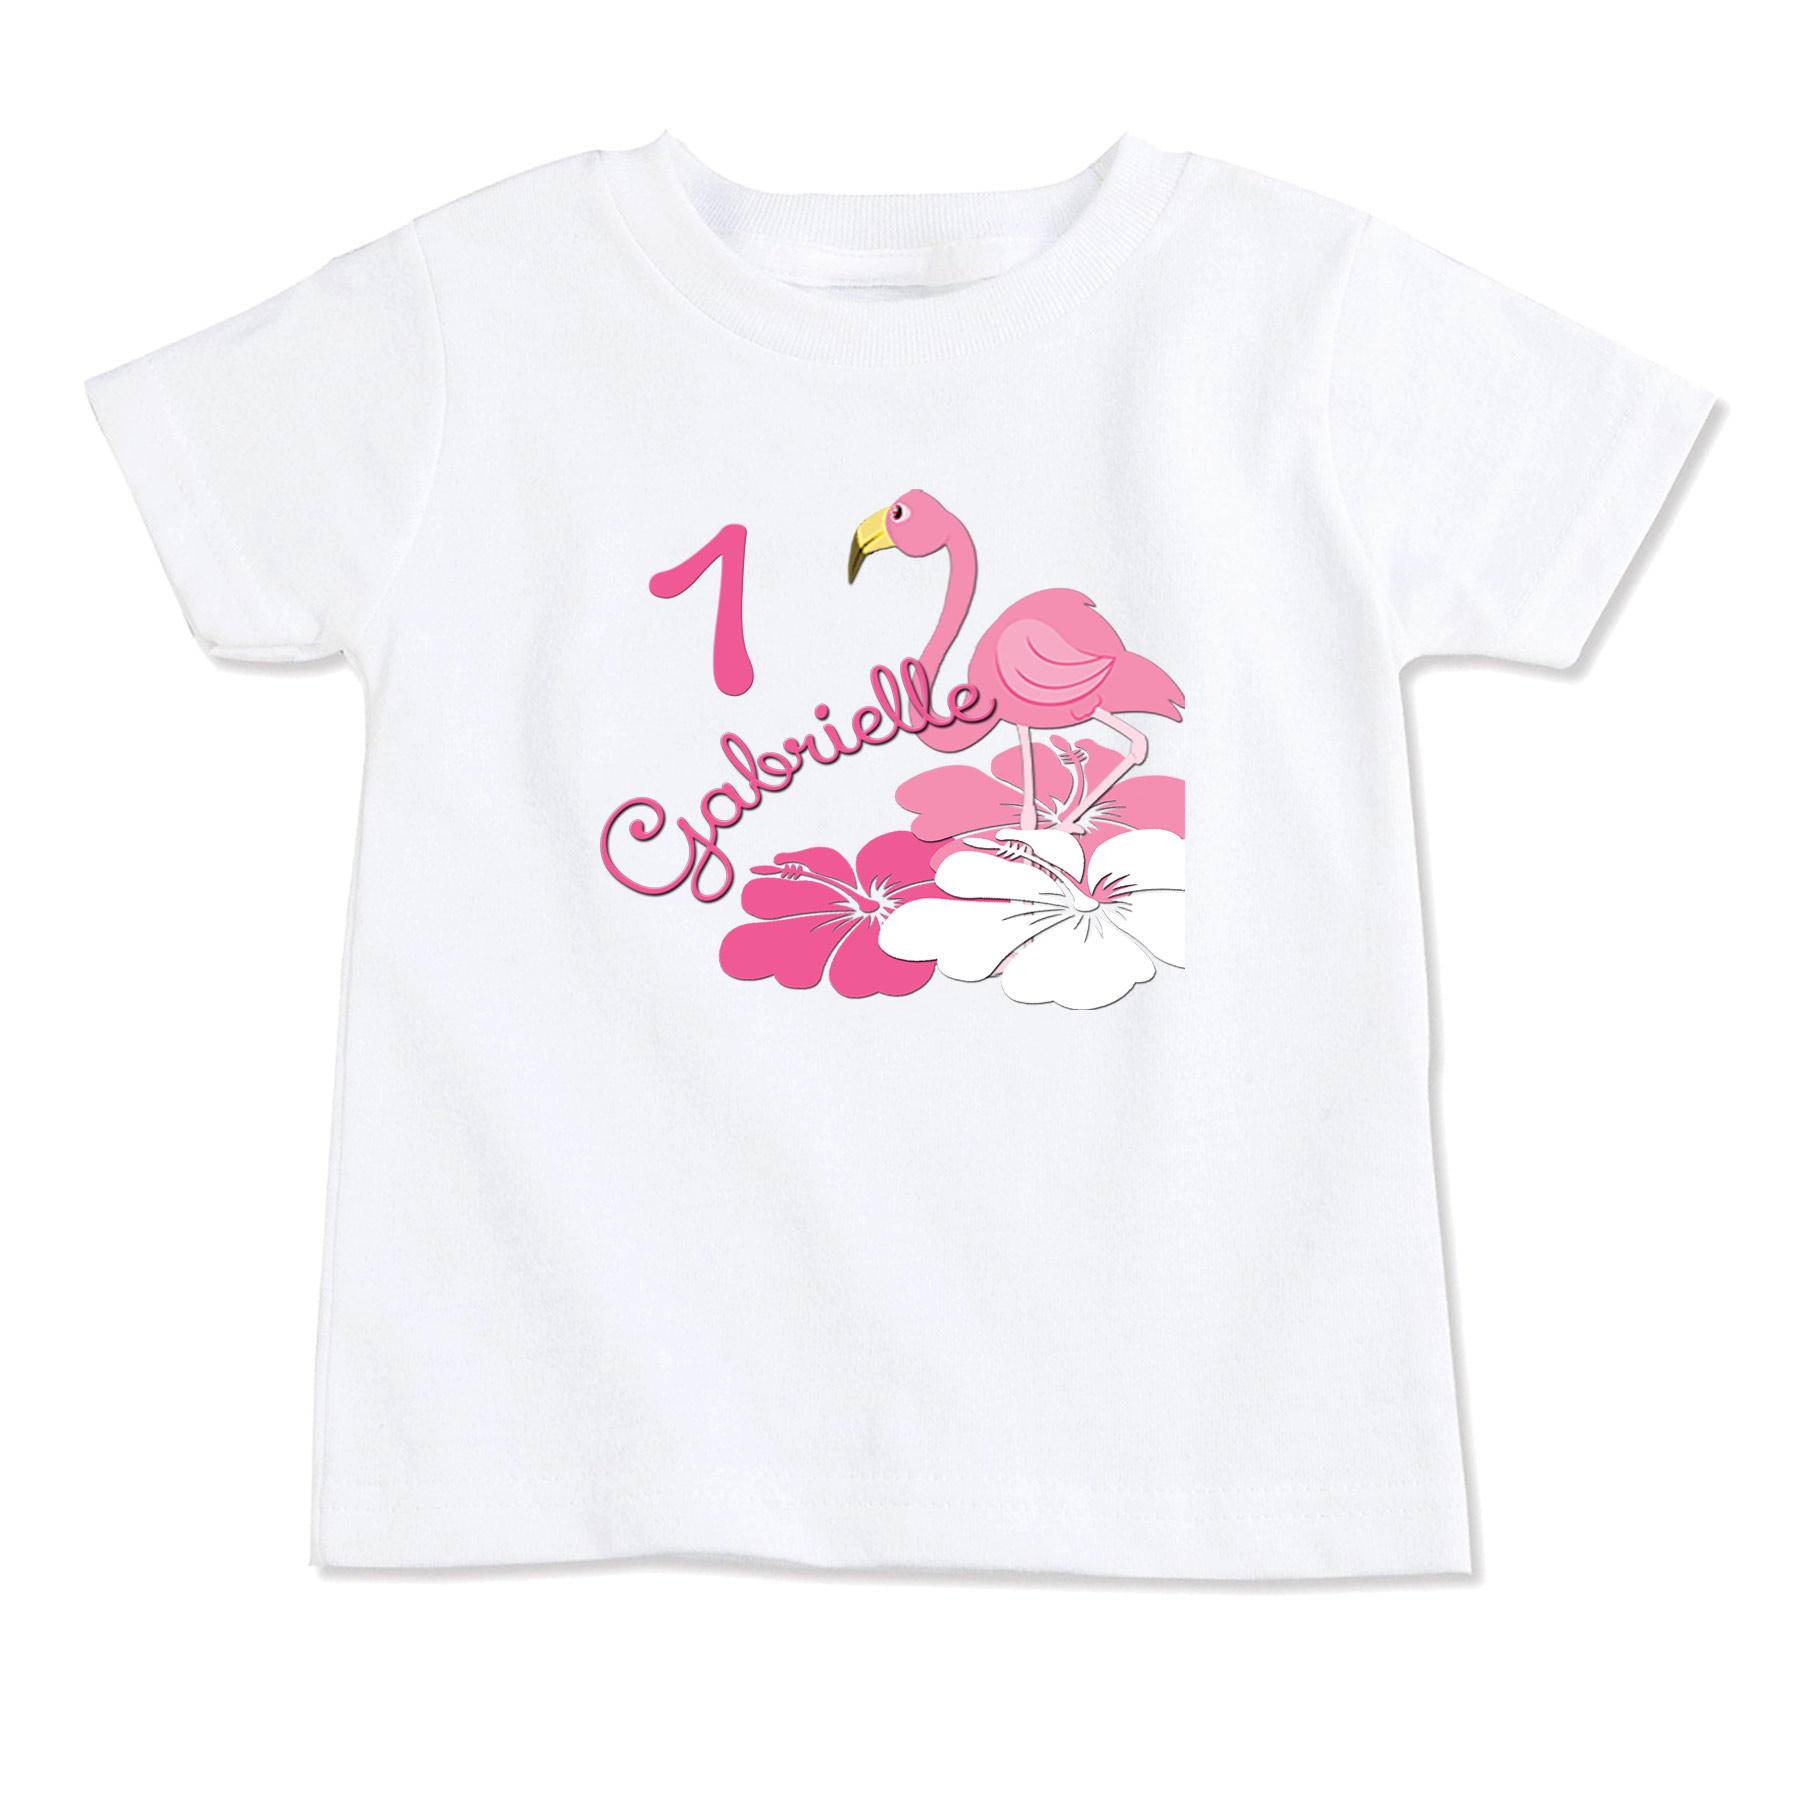 Flamingo T ShirtBirthday ShirtParty ShirtPersonalized ShirtCustom ShirtToddler Tops On Storenvy